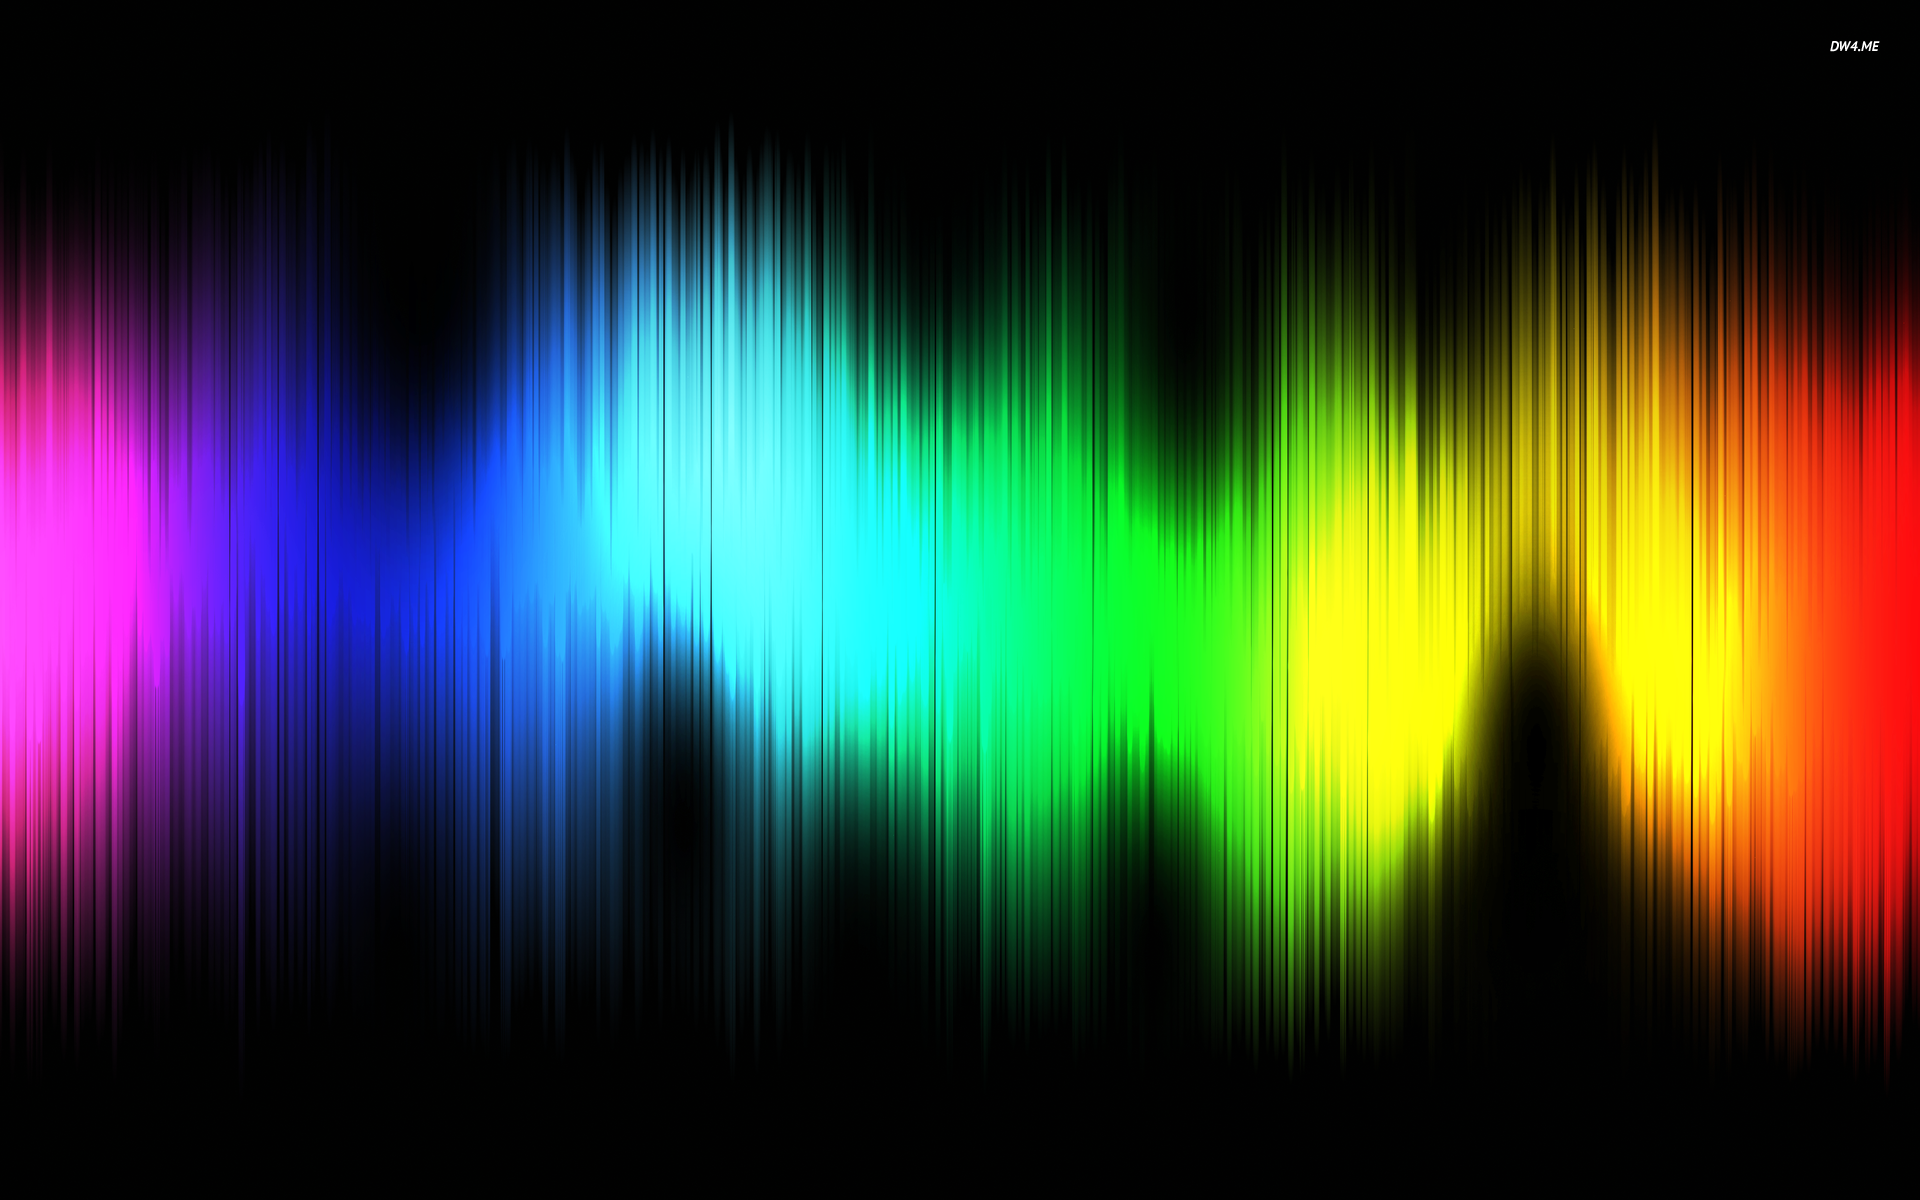 Colorful sound waves wallpaper   Digital Art wallpapers 1920x1200